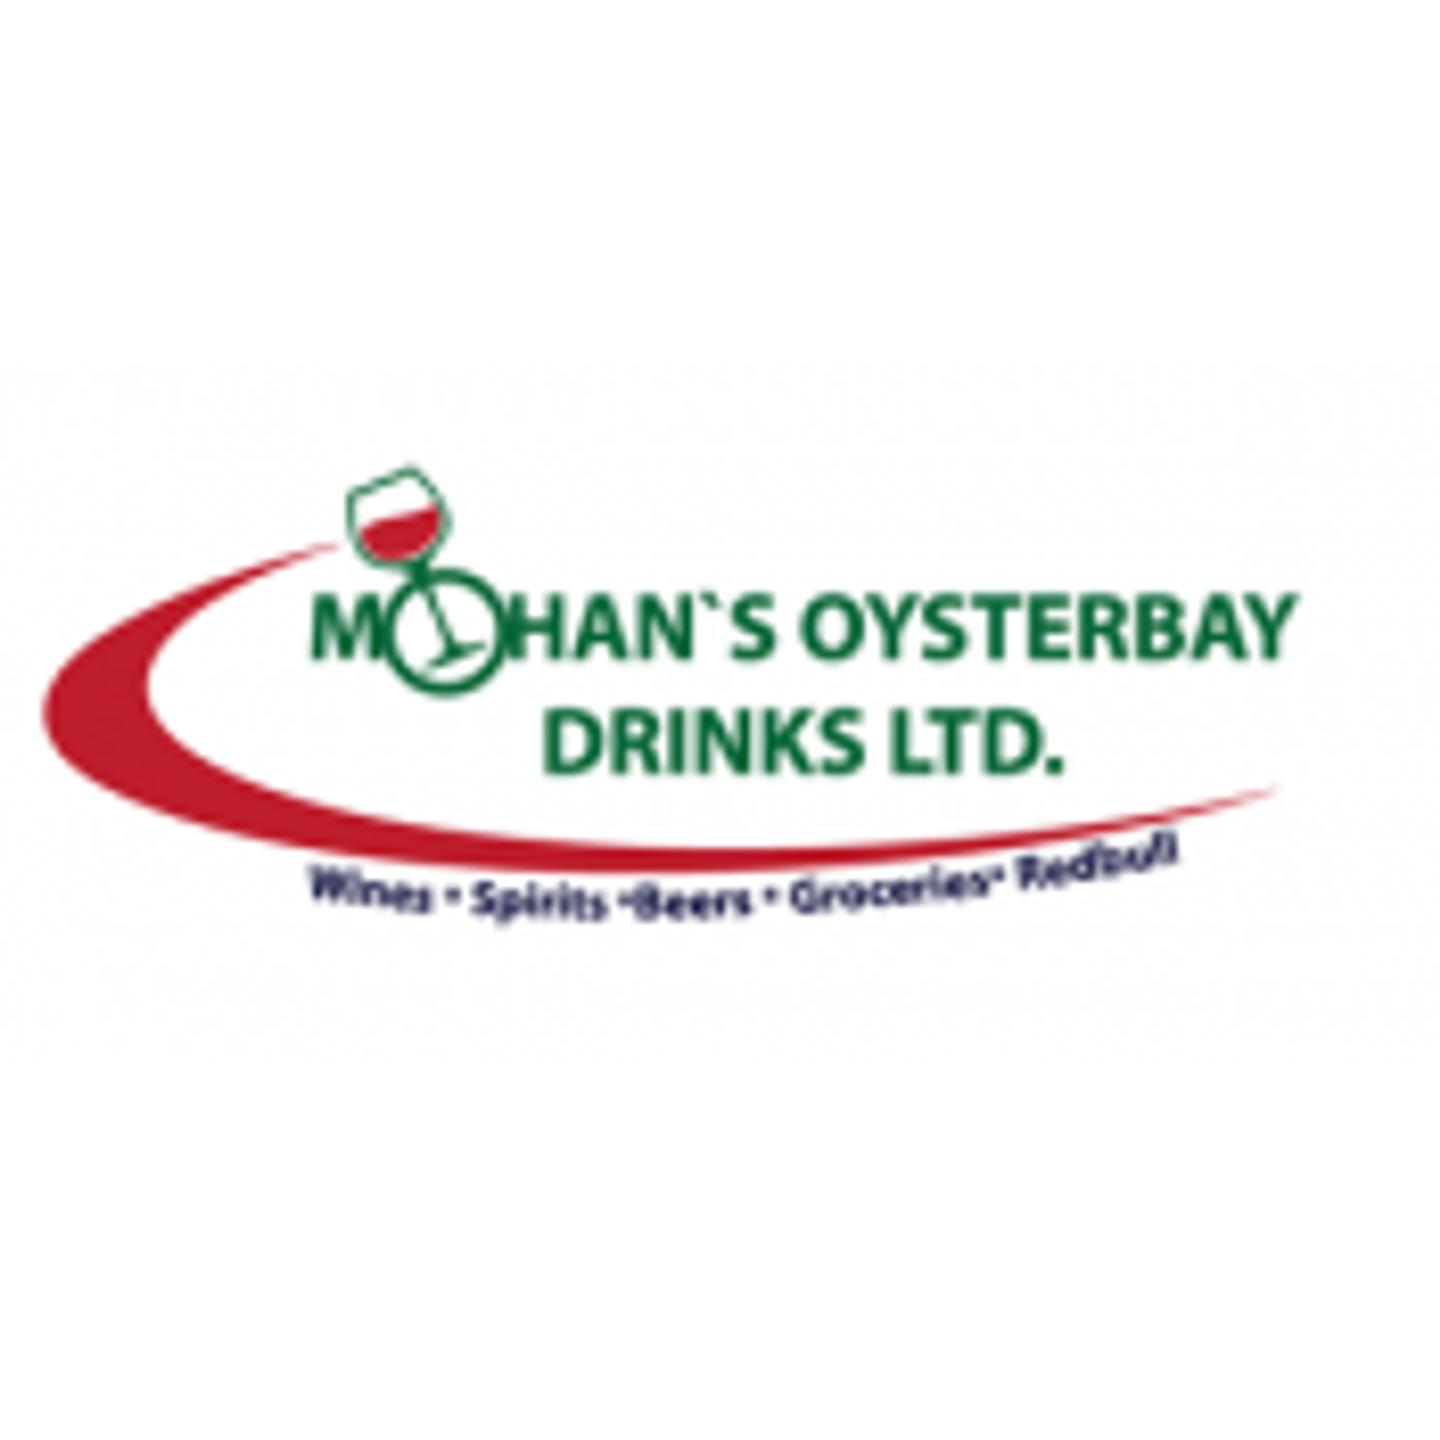 Wholesale Suppliers In Tanzania Mohan S Oysterbay Drinks Ltd In Tanzania Zoomtanzania